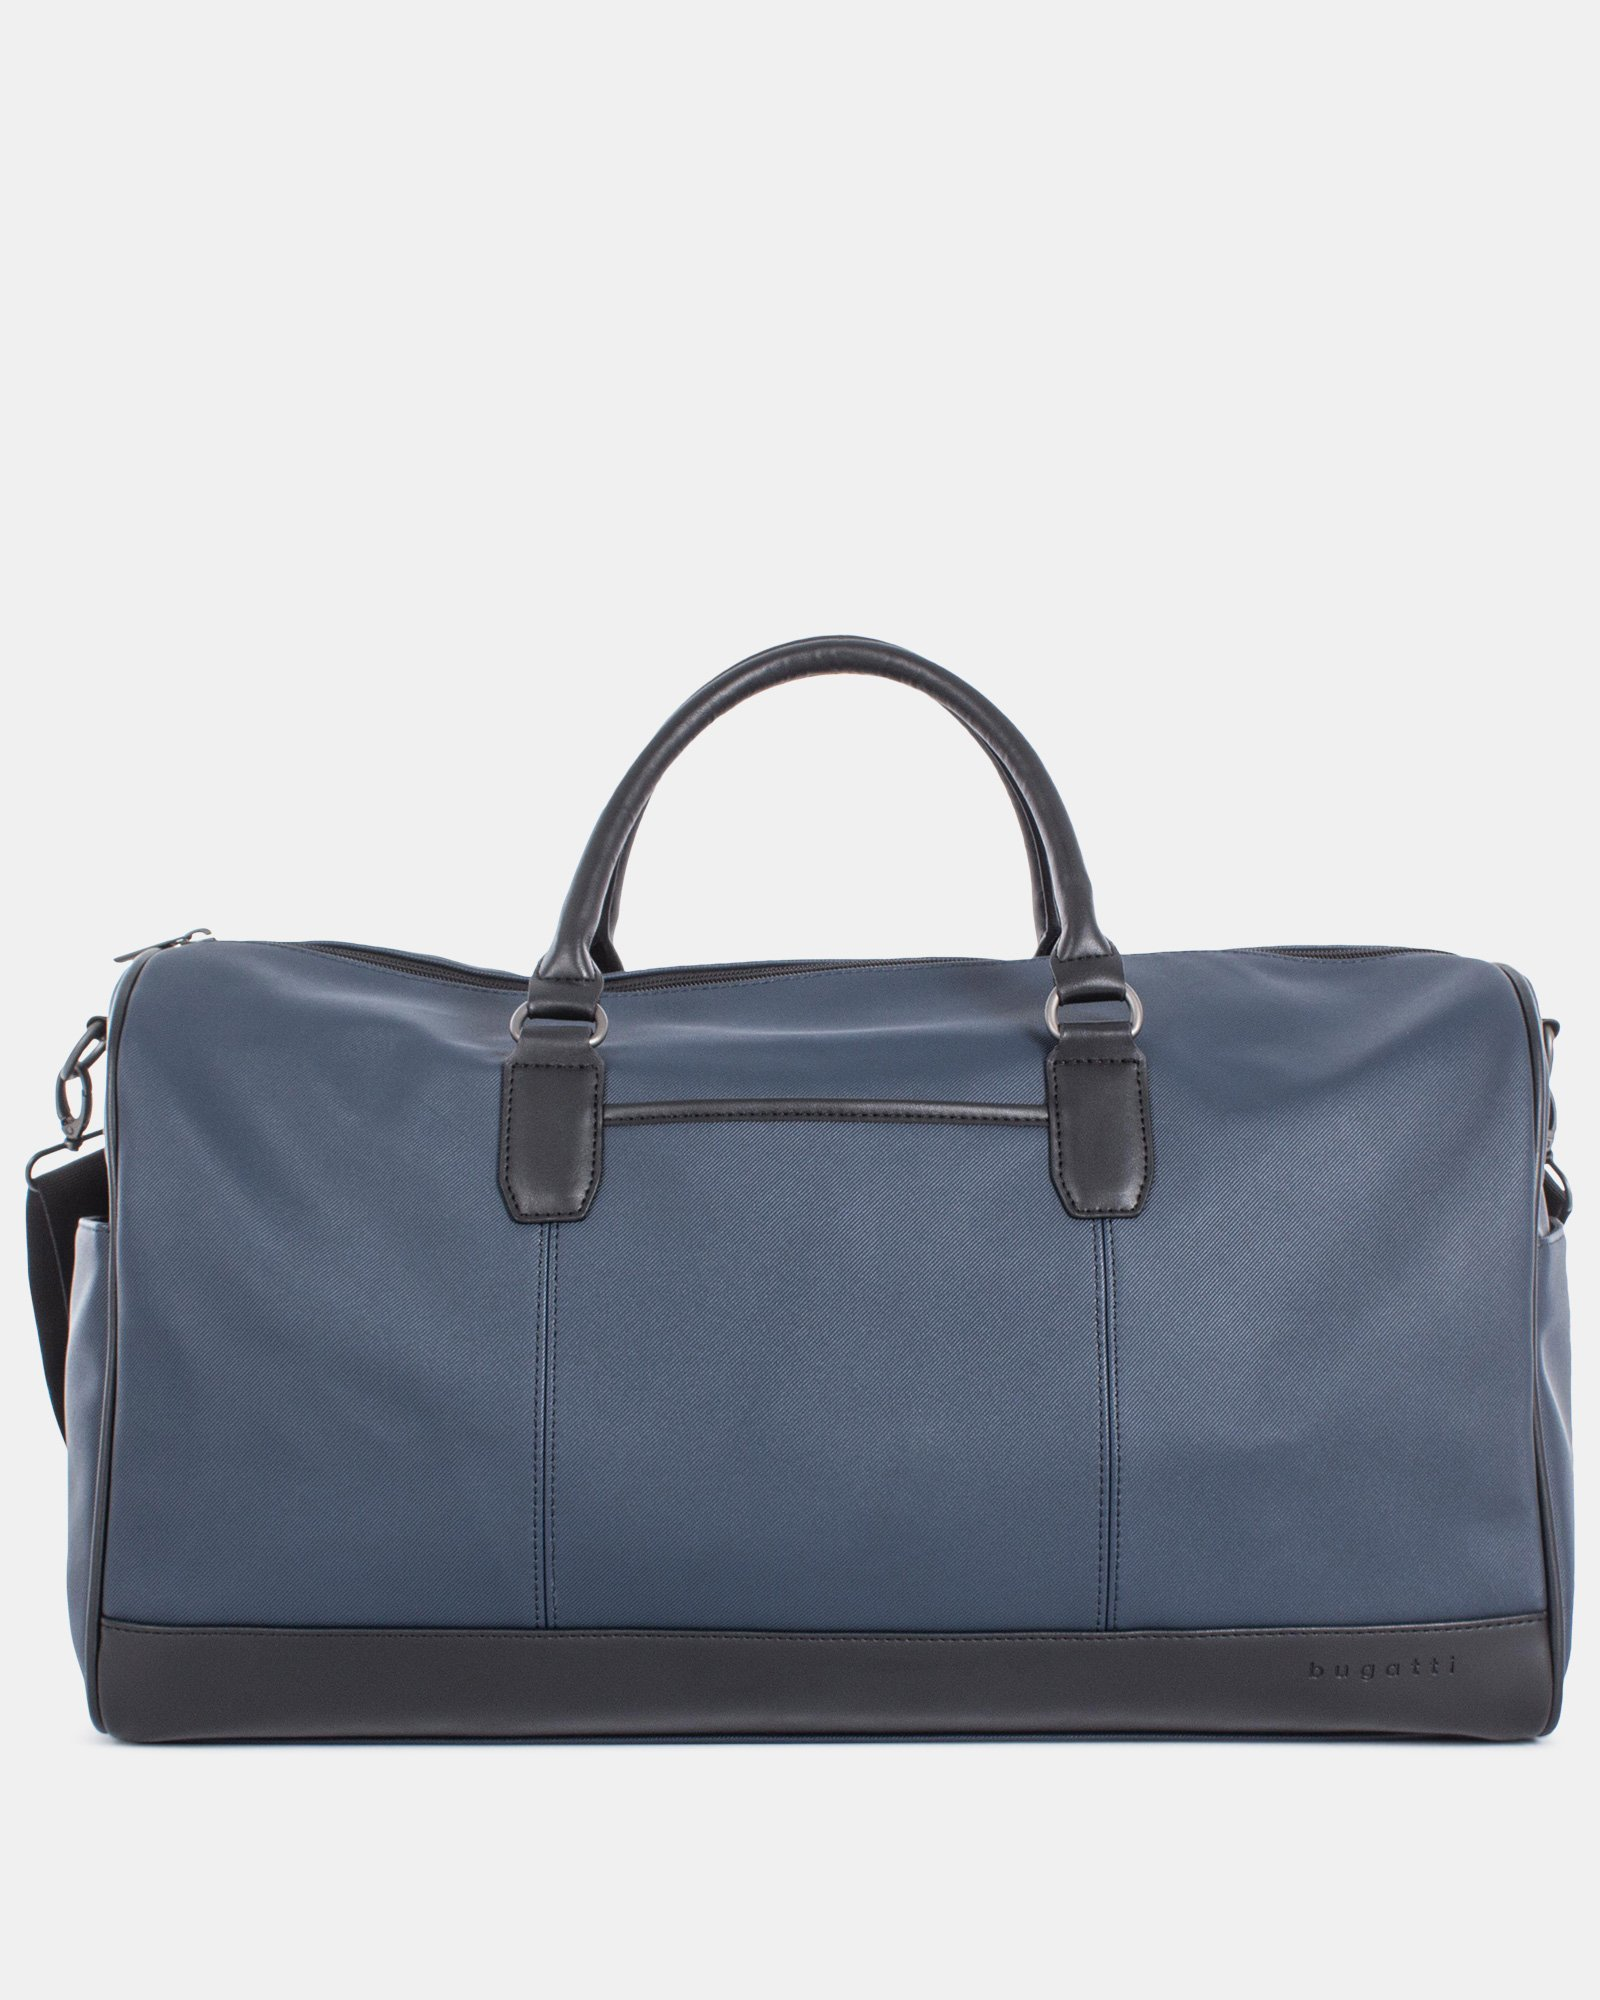 Gin & Twill - Duffle Bag with Padded laptop section - navy - Bugatti - Zoom